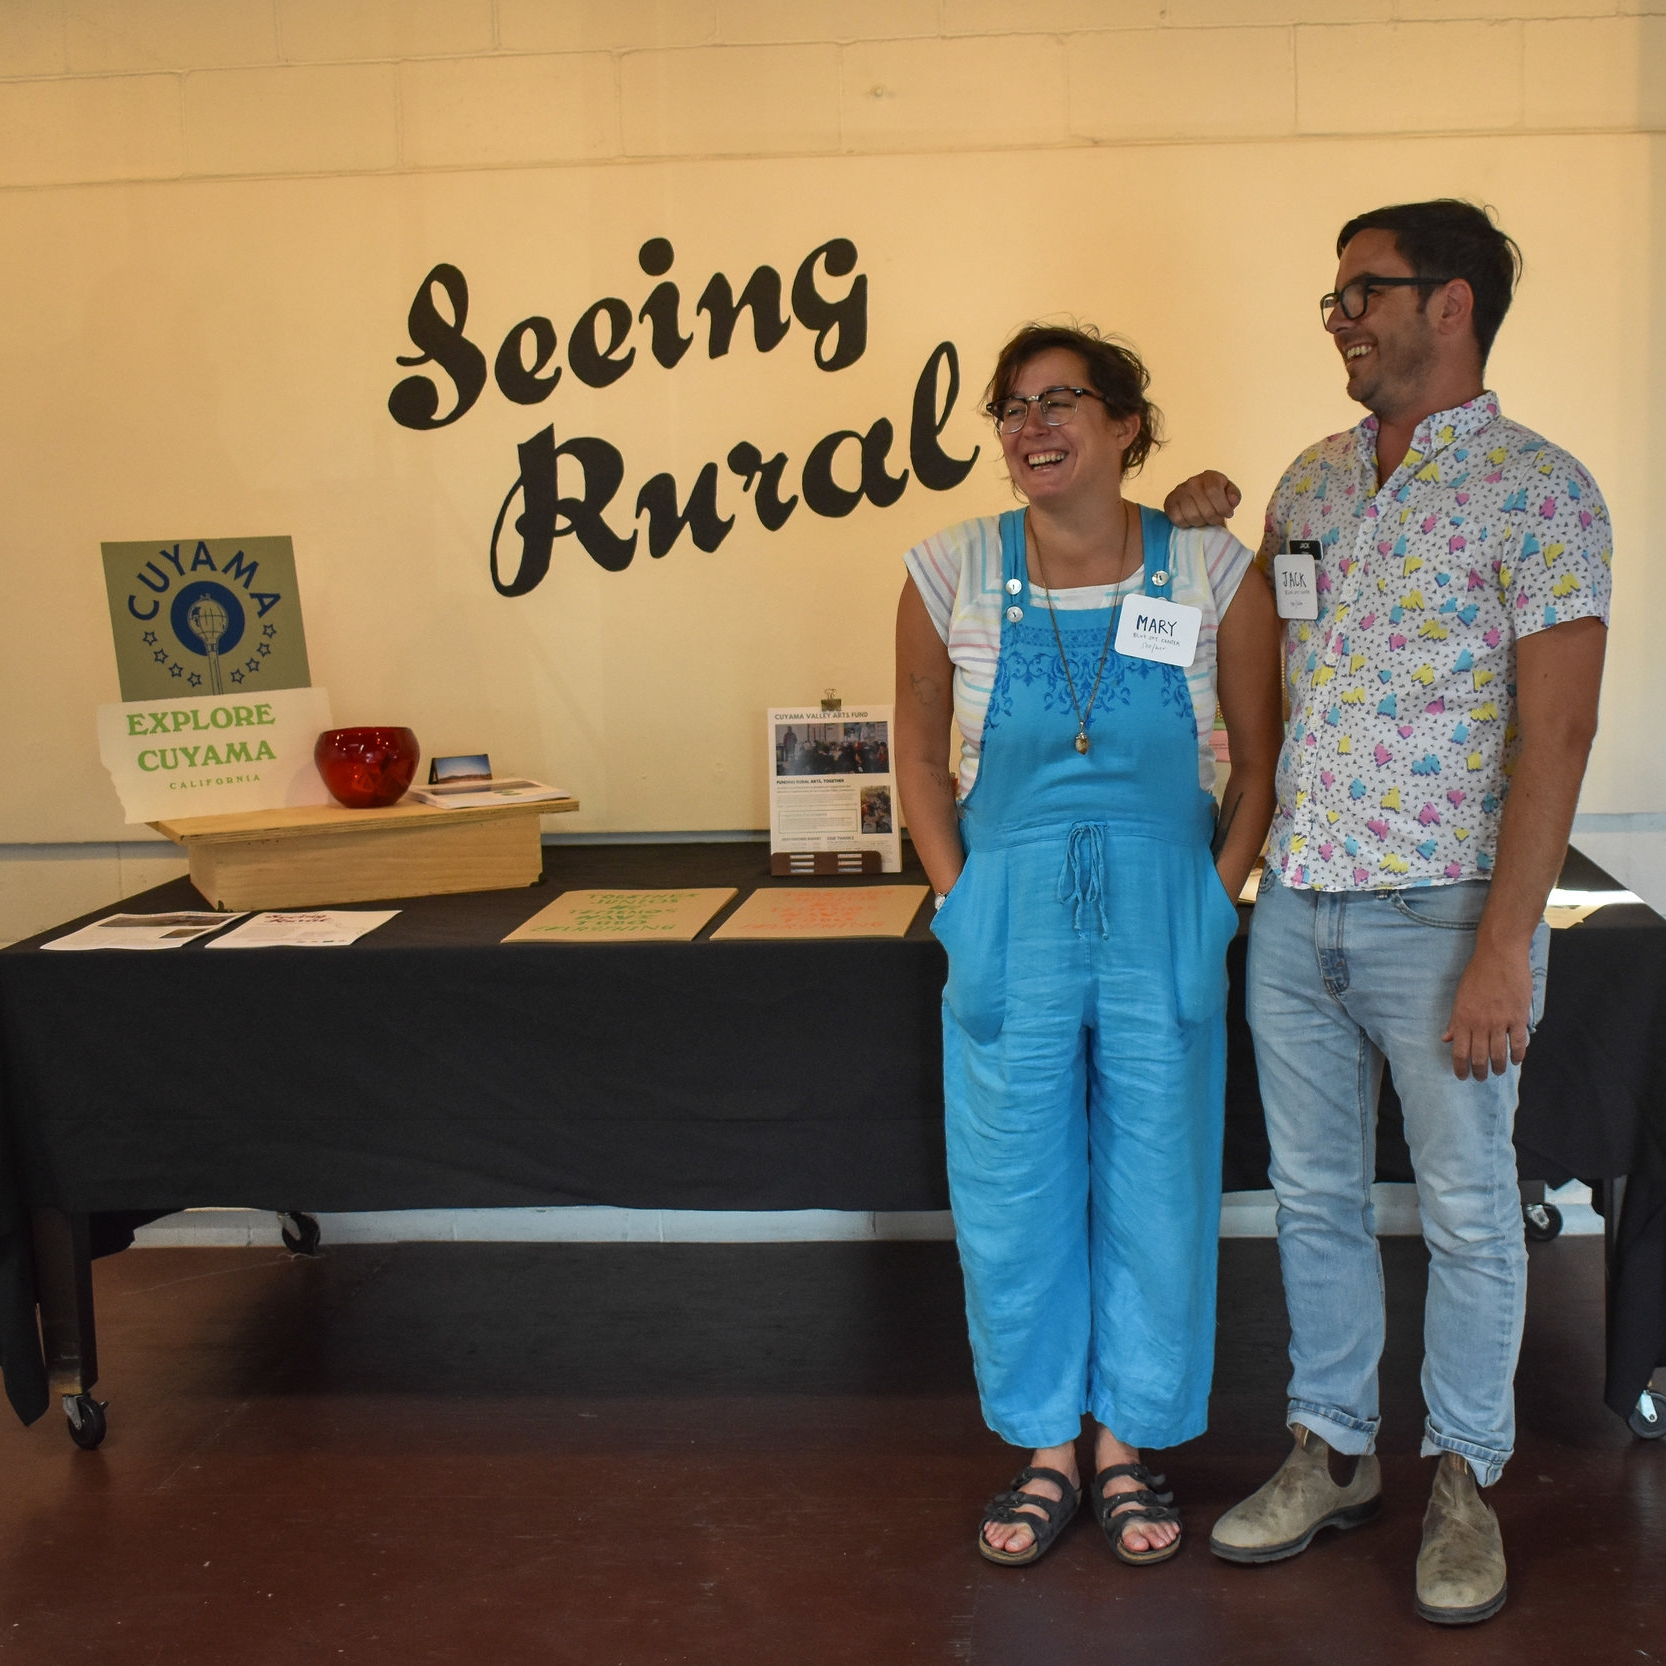 Seeing Rural : Through the Eyes of Visiting Artists in the Cuyama Valley July 26, 2018